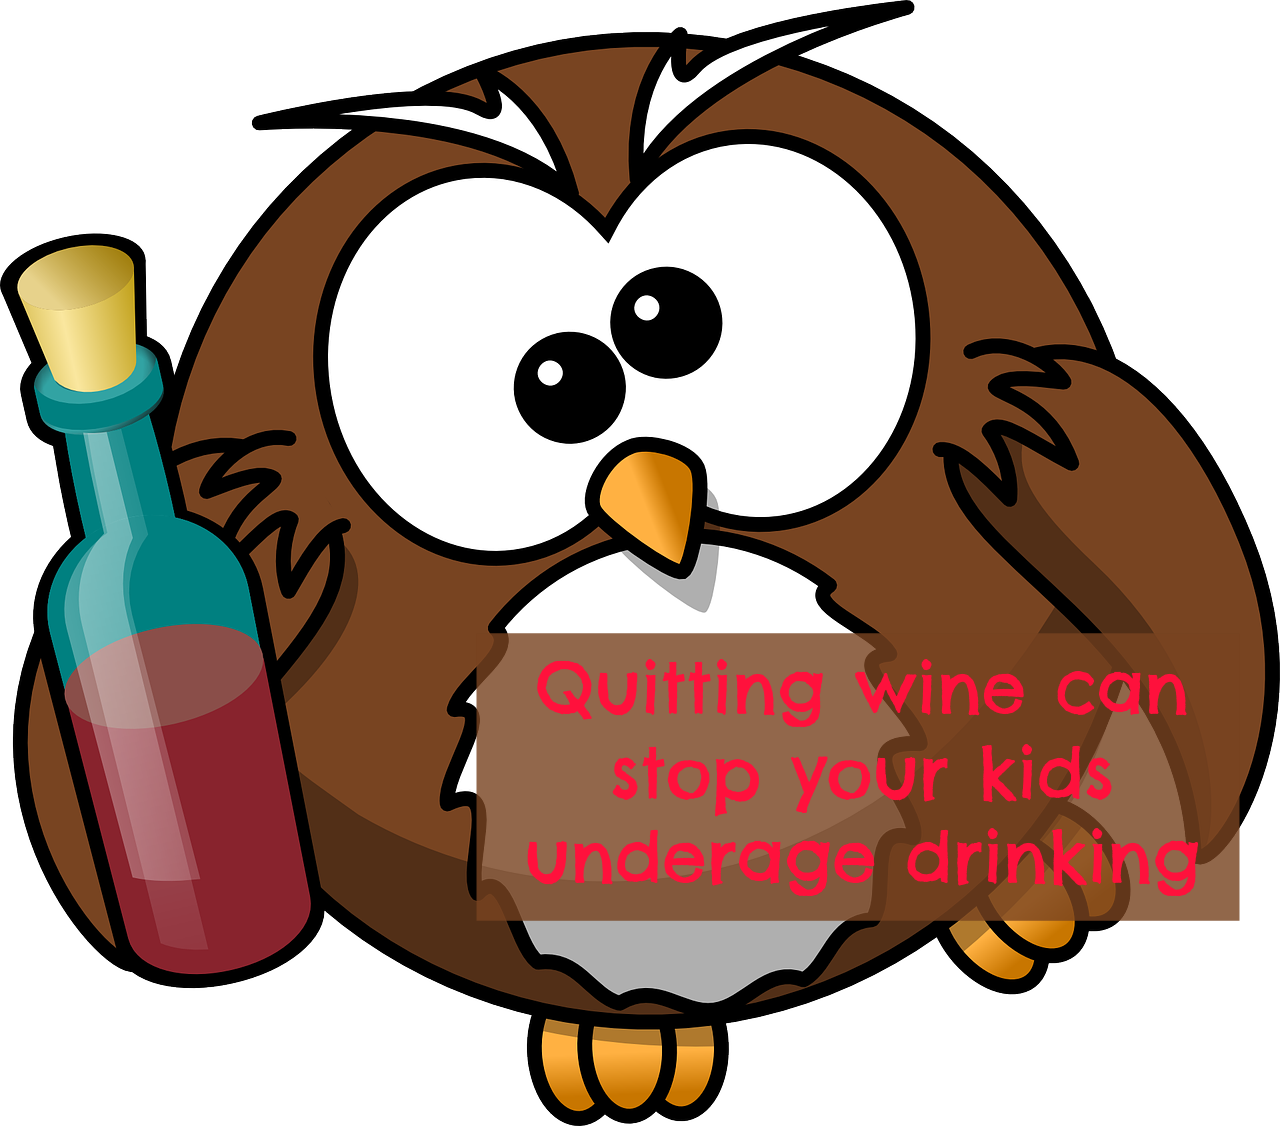 Quitting wine can stop. Drinking clipart drug alcohol